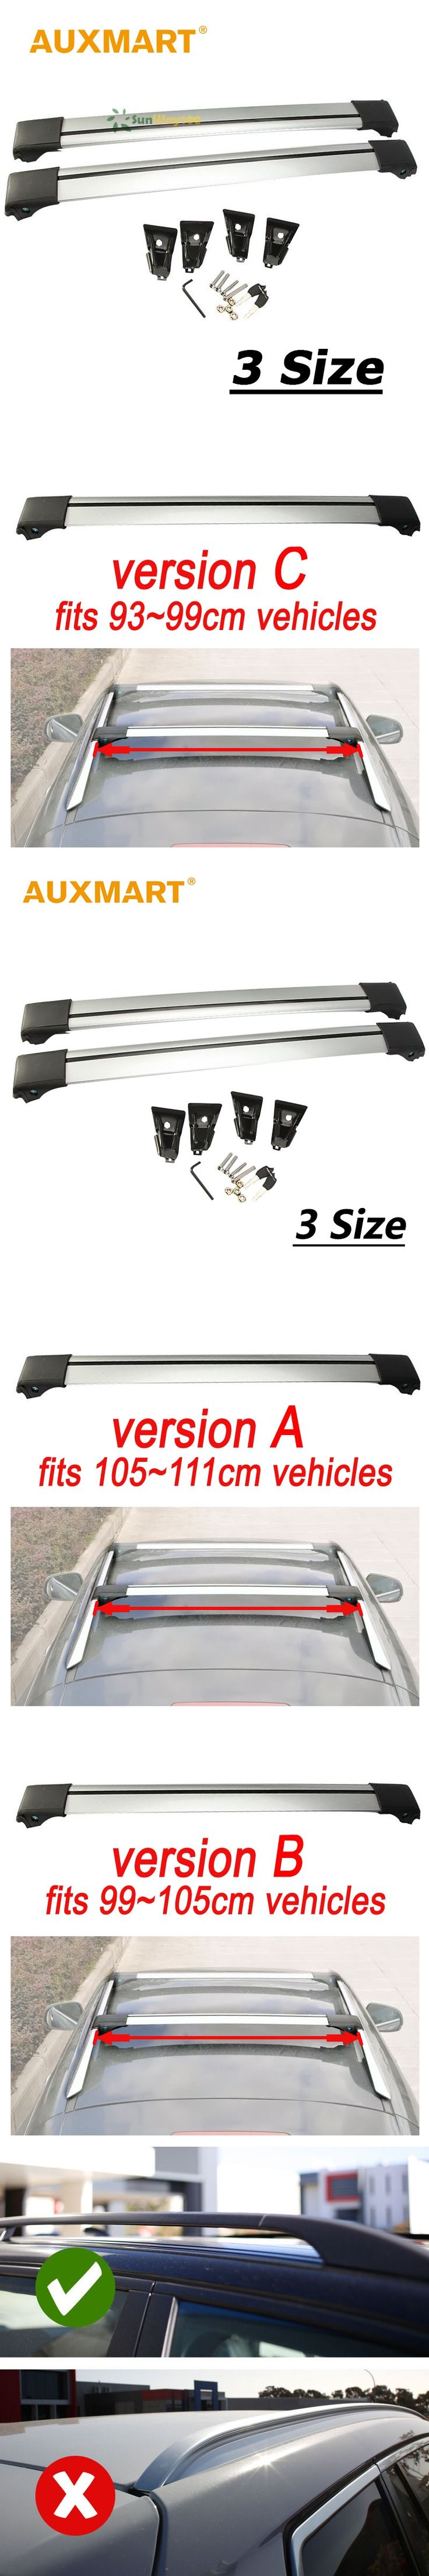 Auxmart Universal Car Roof Rack Cross Bar 93~111cm with Anti-theft Lock Auto Roof Rails Bars Load Cargo Luggage Carrier 70KG